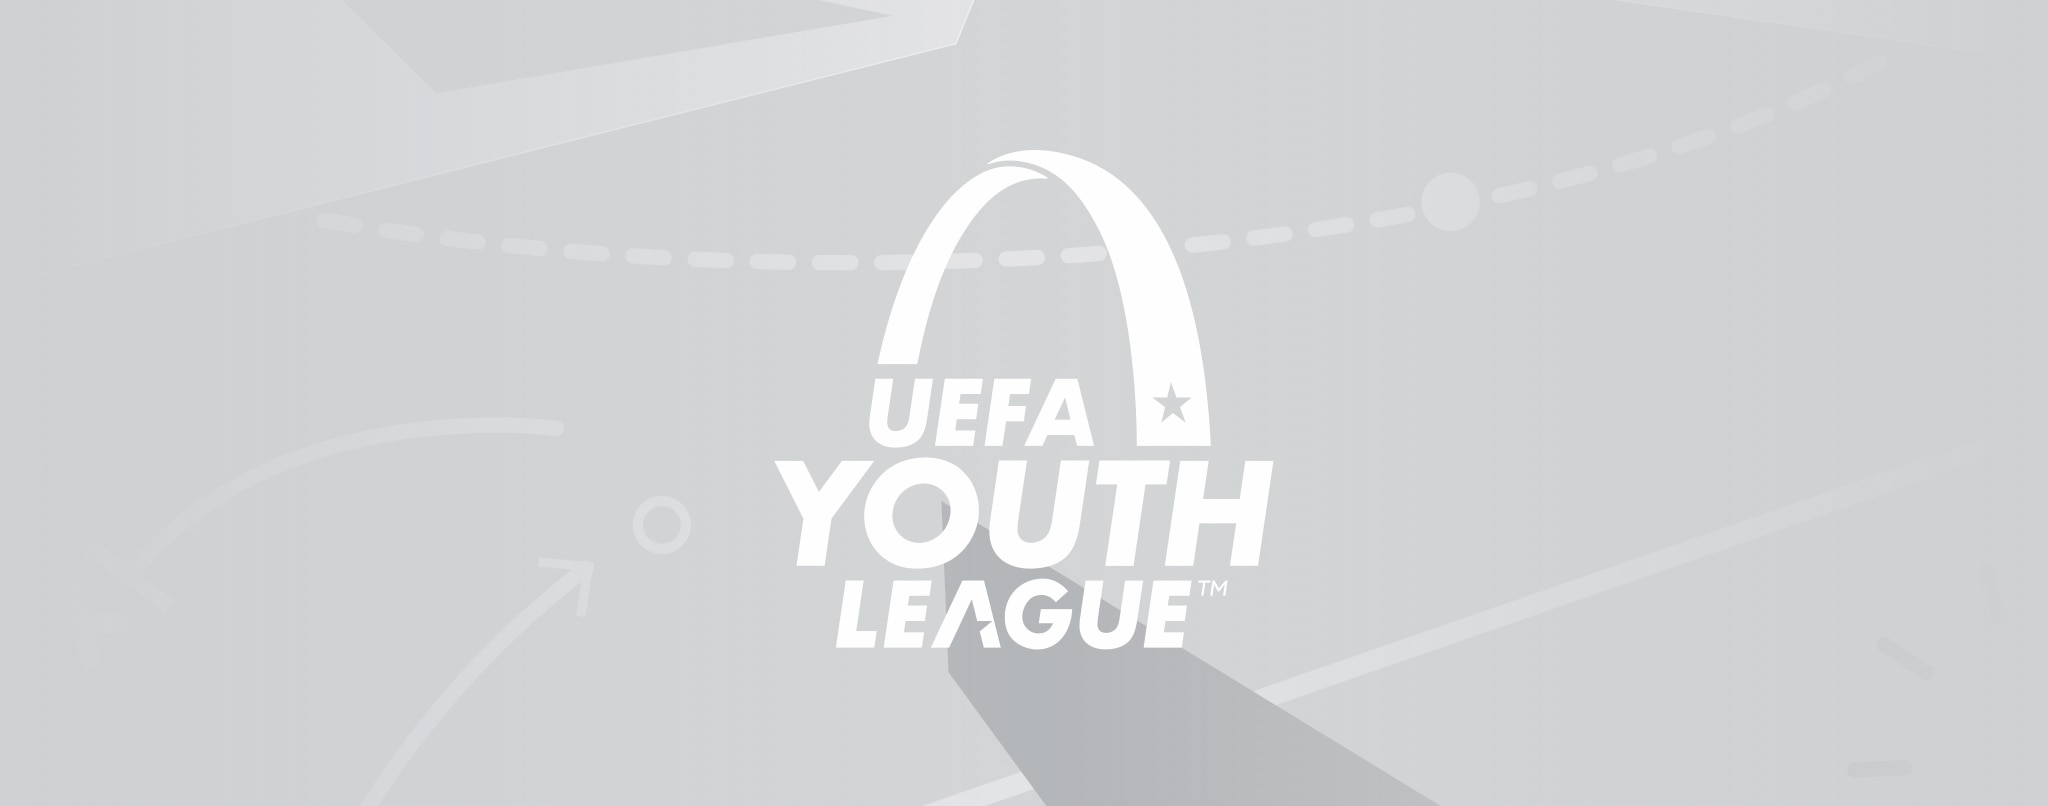 Youth League express